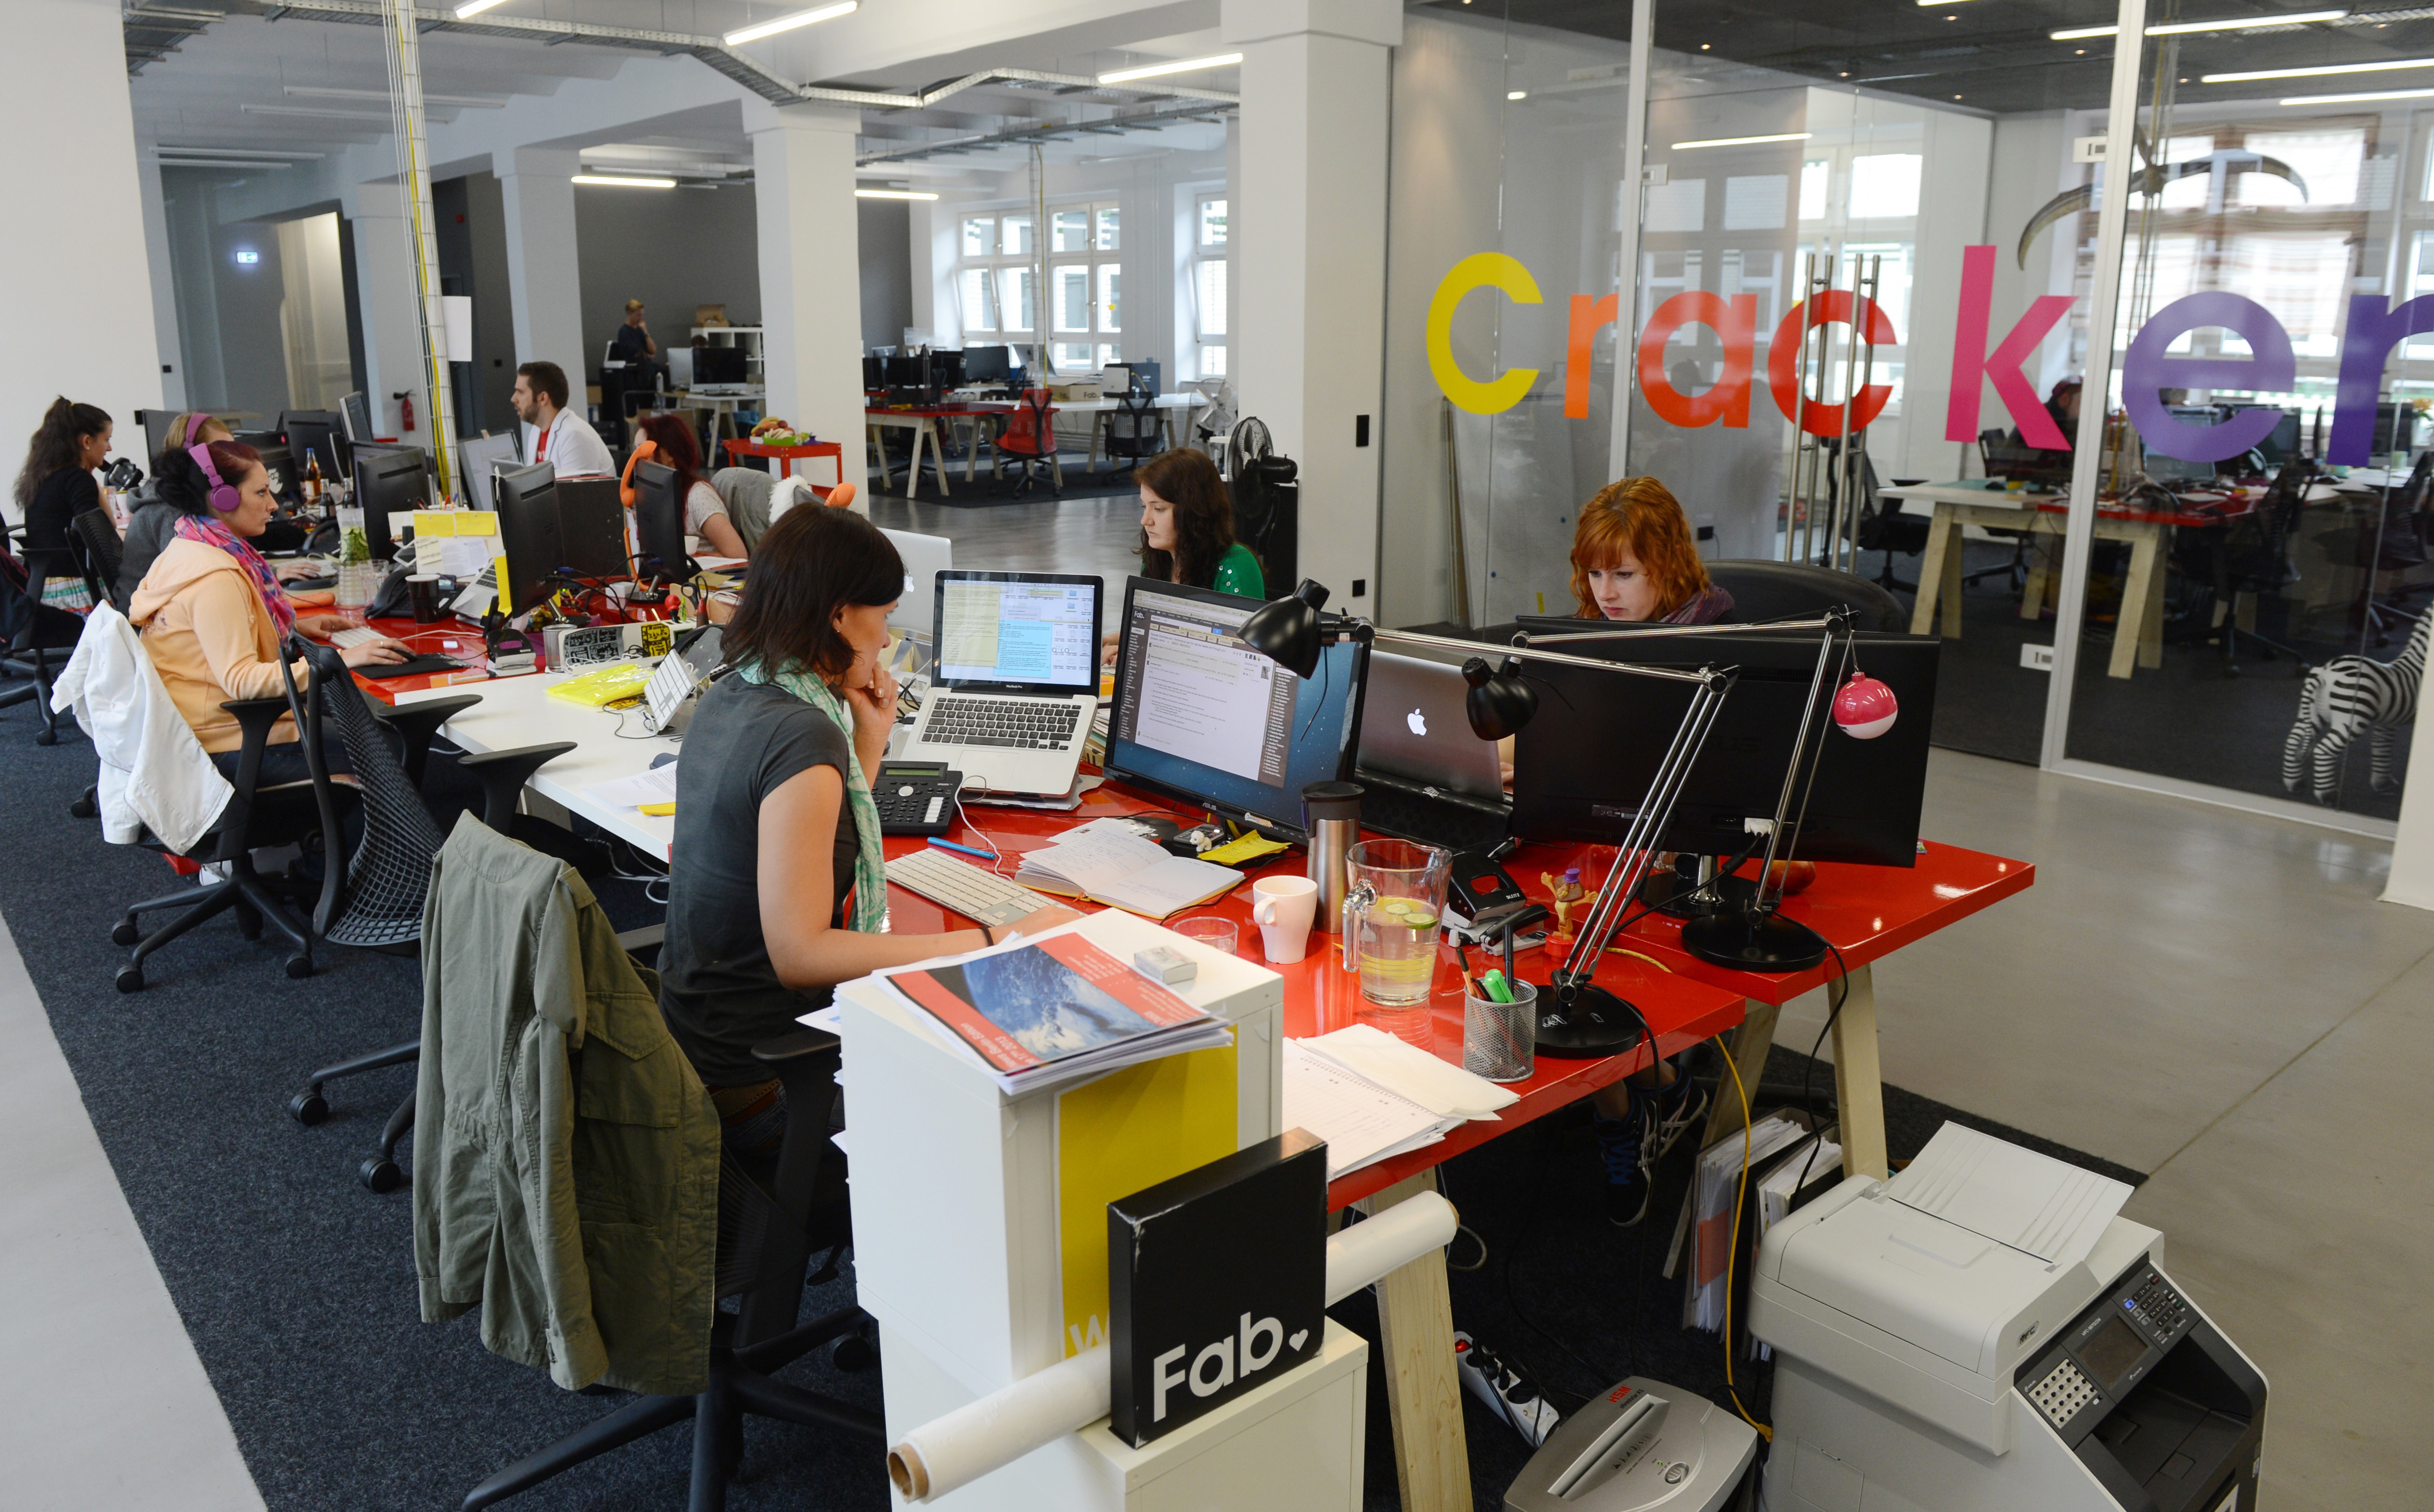 Venture Capital Should Fuel Your Company, Not Your Ego: 6 Critical Lessons From The Fall Of Fab.com